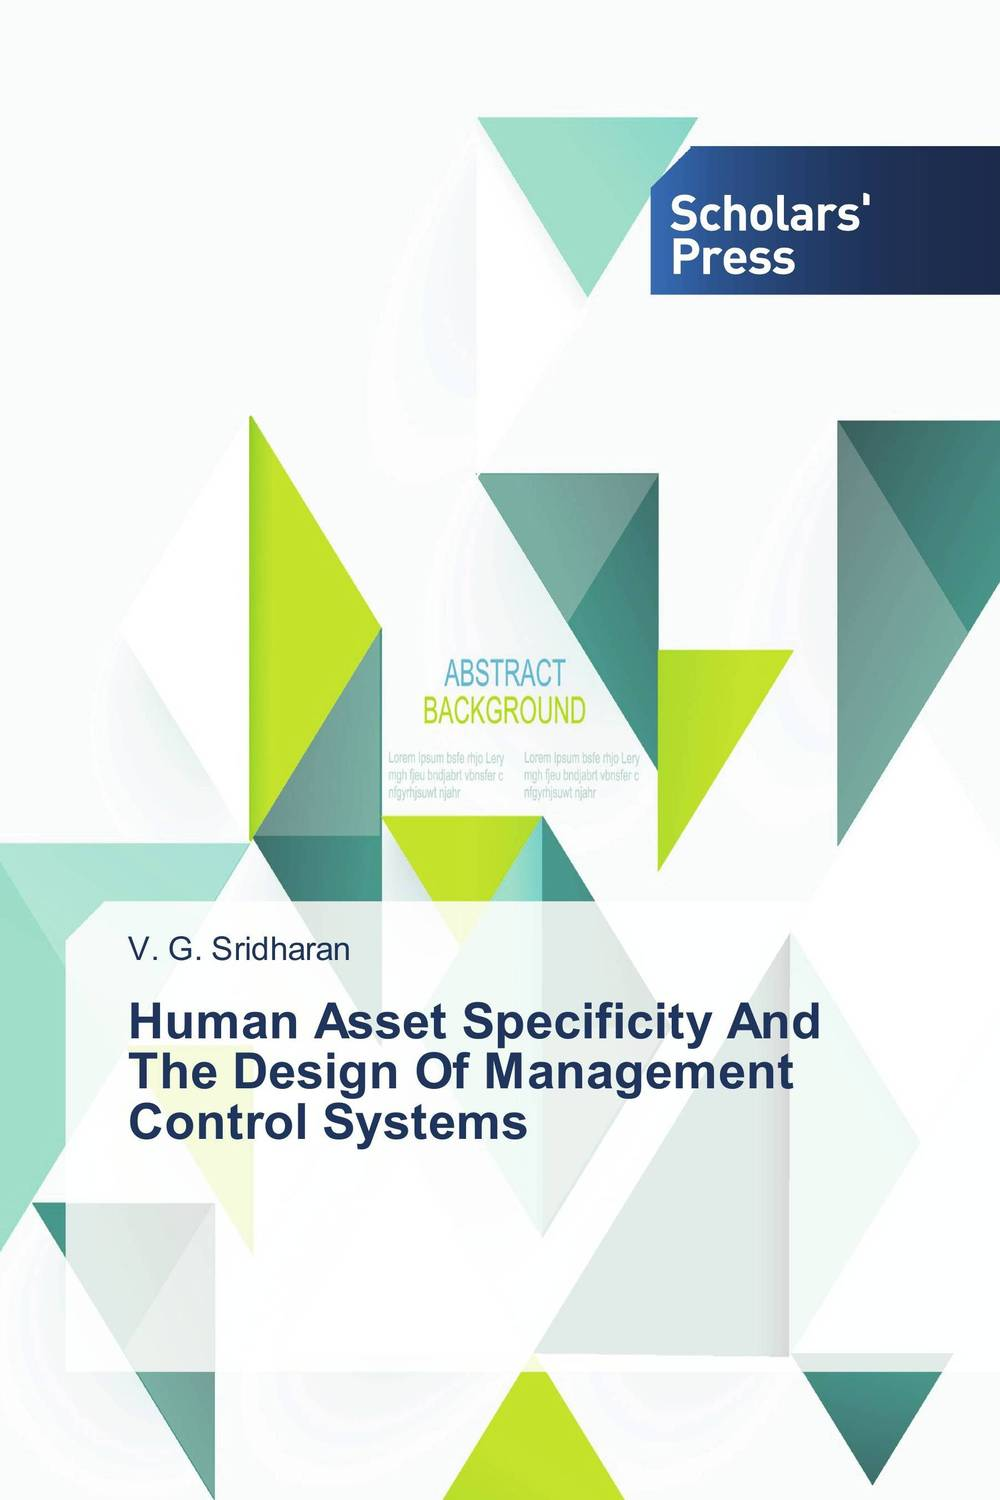 Human Asset Specificity And The Design Of Management Control Systems